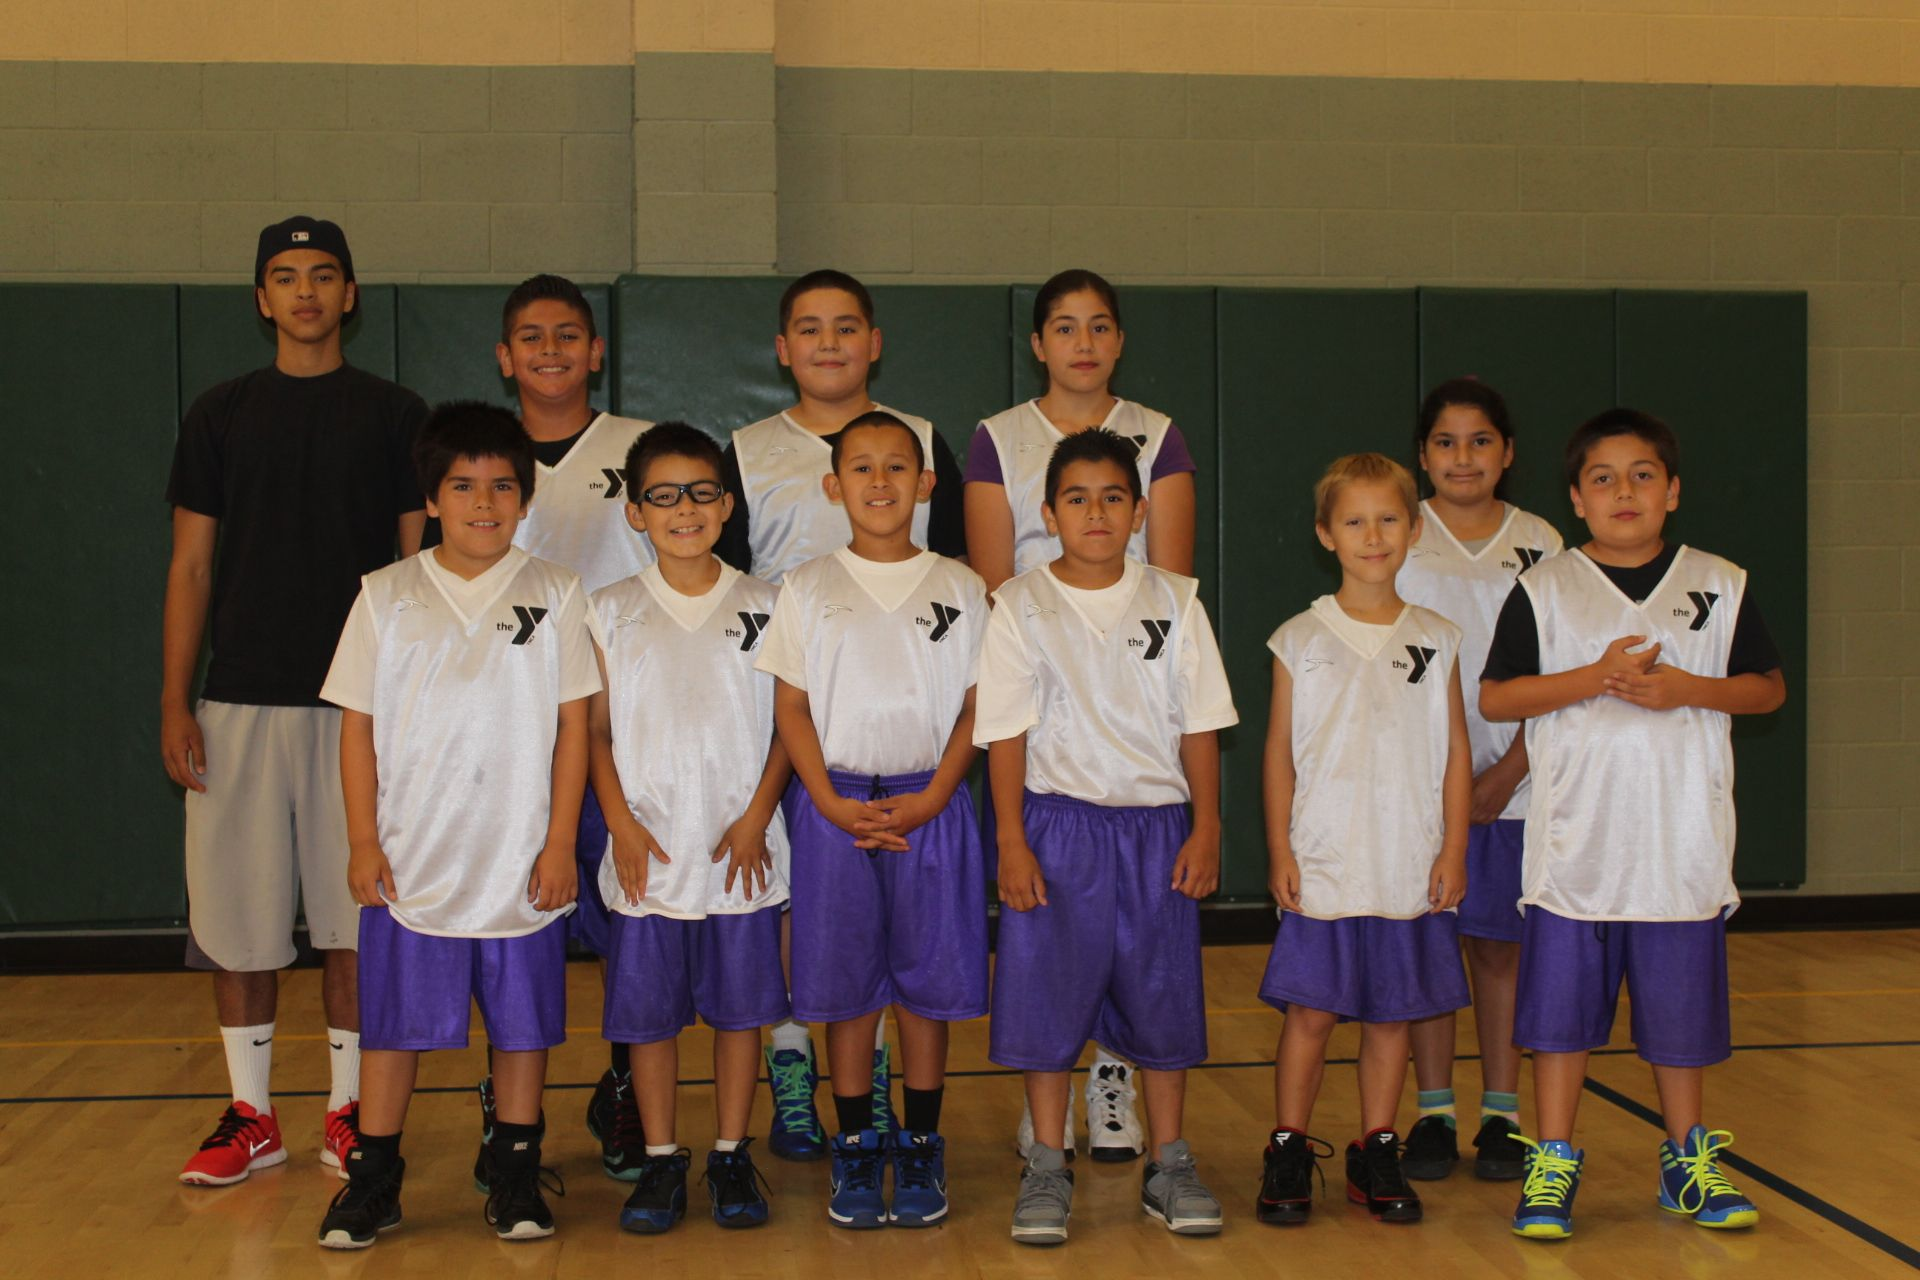 Summer 2014 Youth Basketball League Teams 911 year old